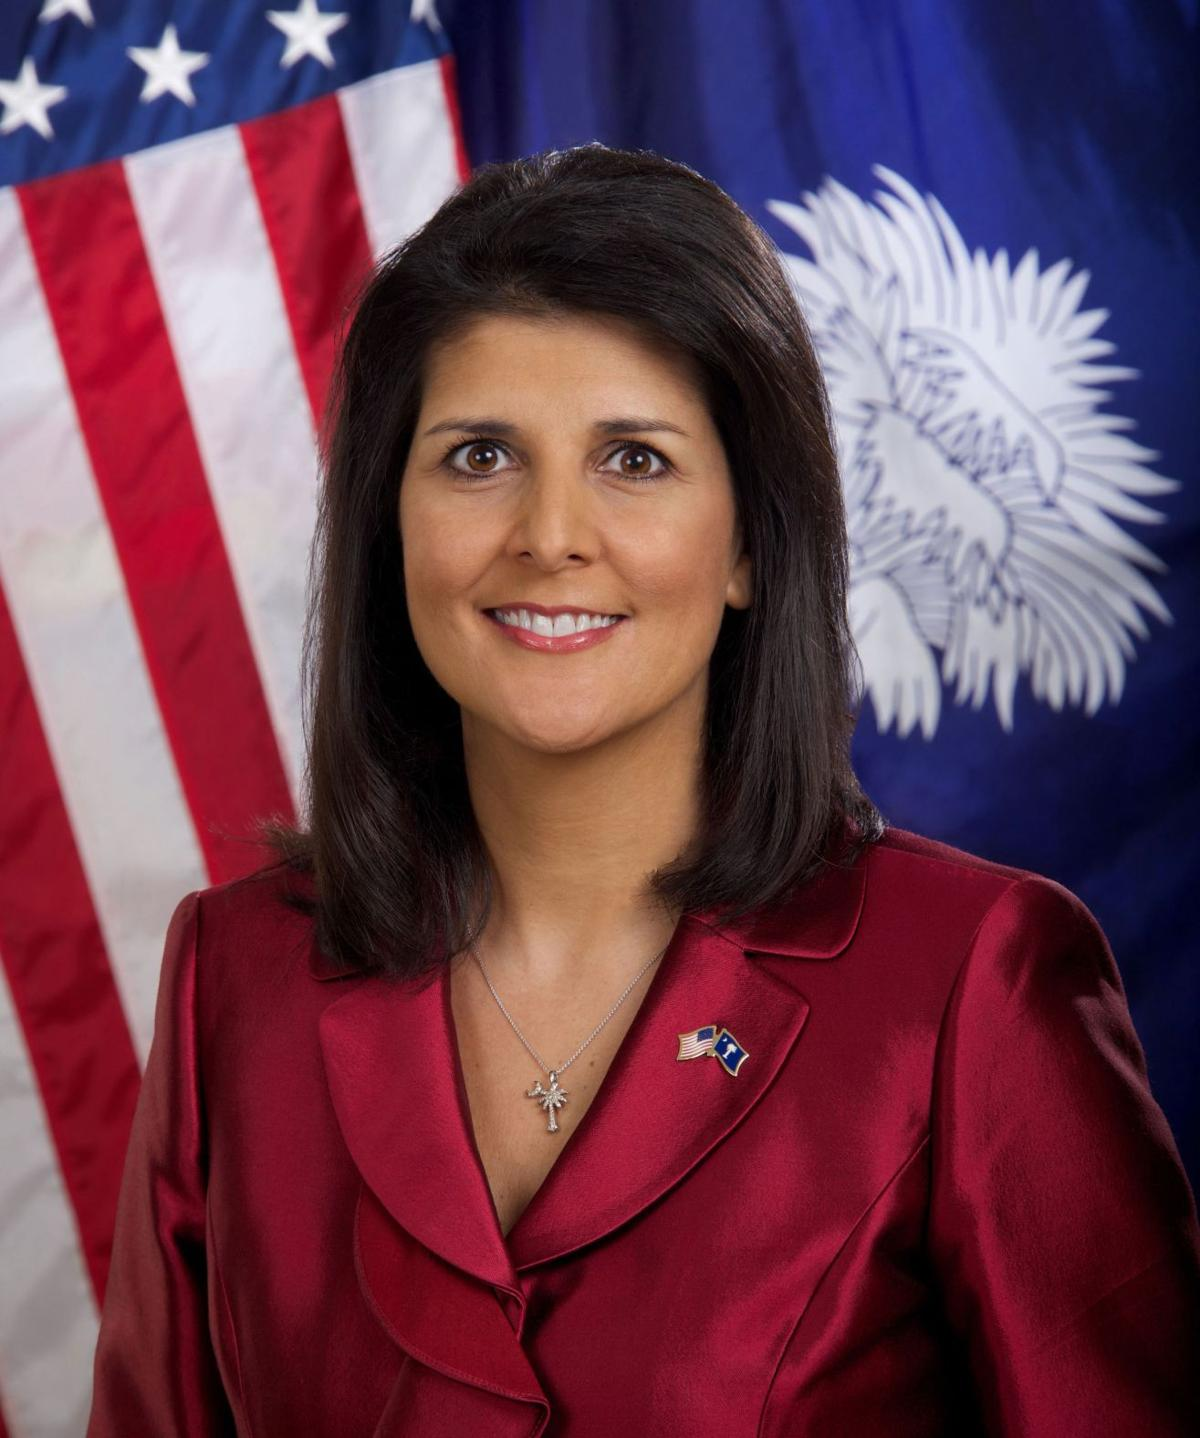 Anti-union ad features Gov. Haley